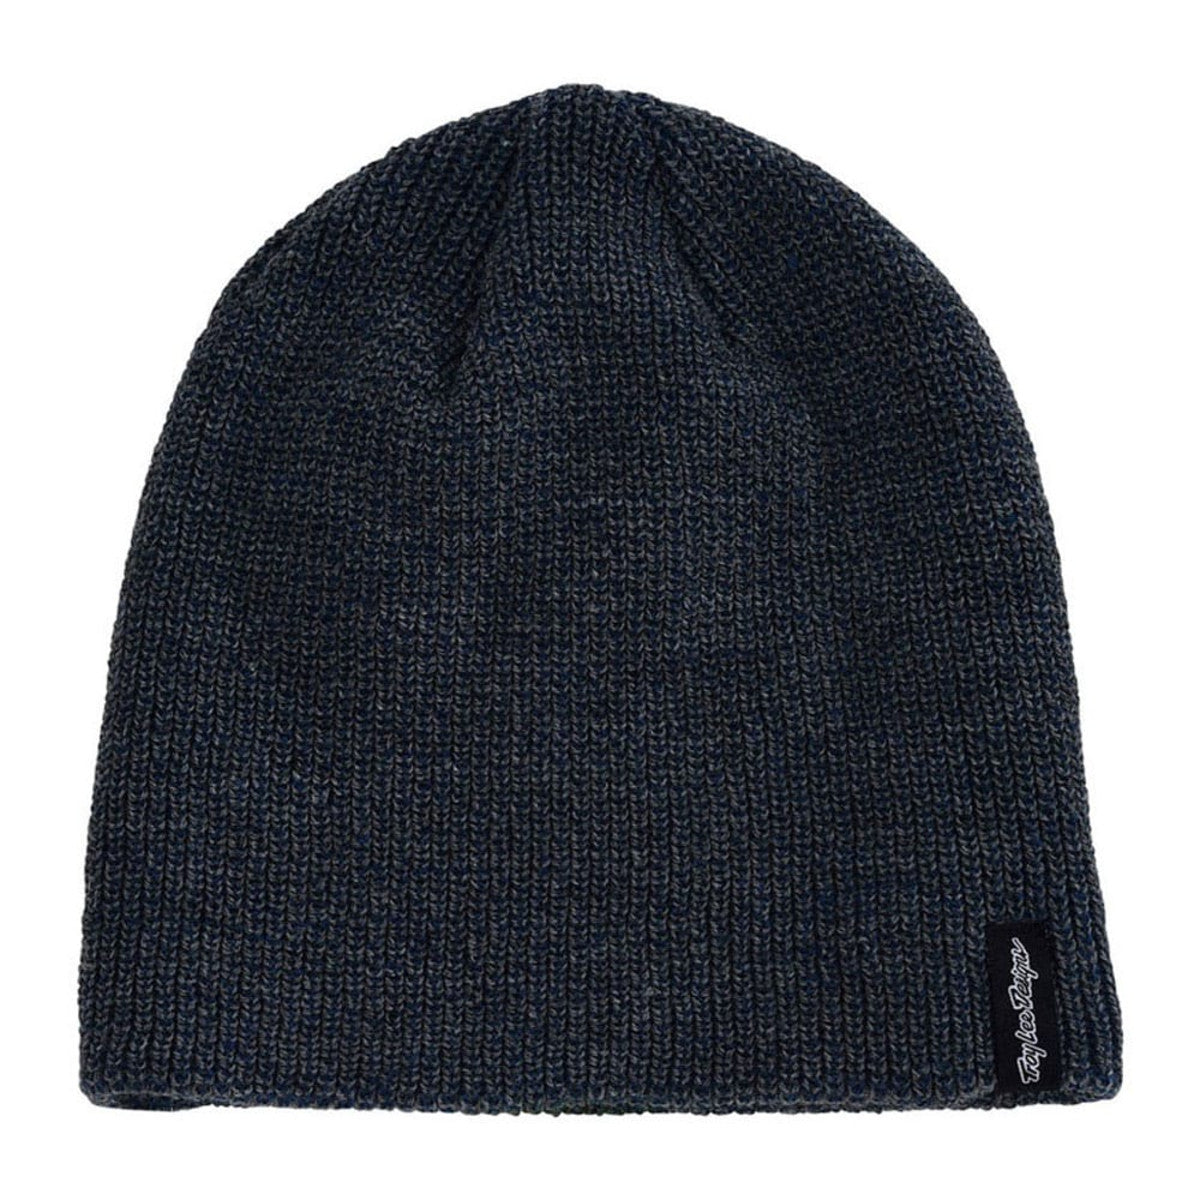 Static Beanie - Slate/Gray by Troy Lee Design